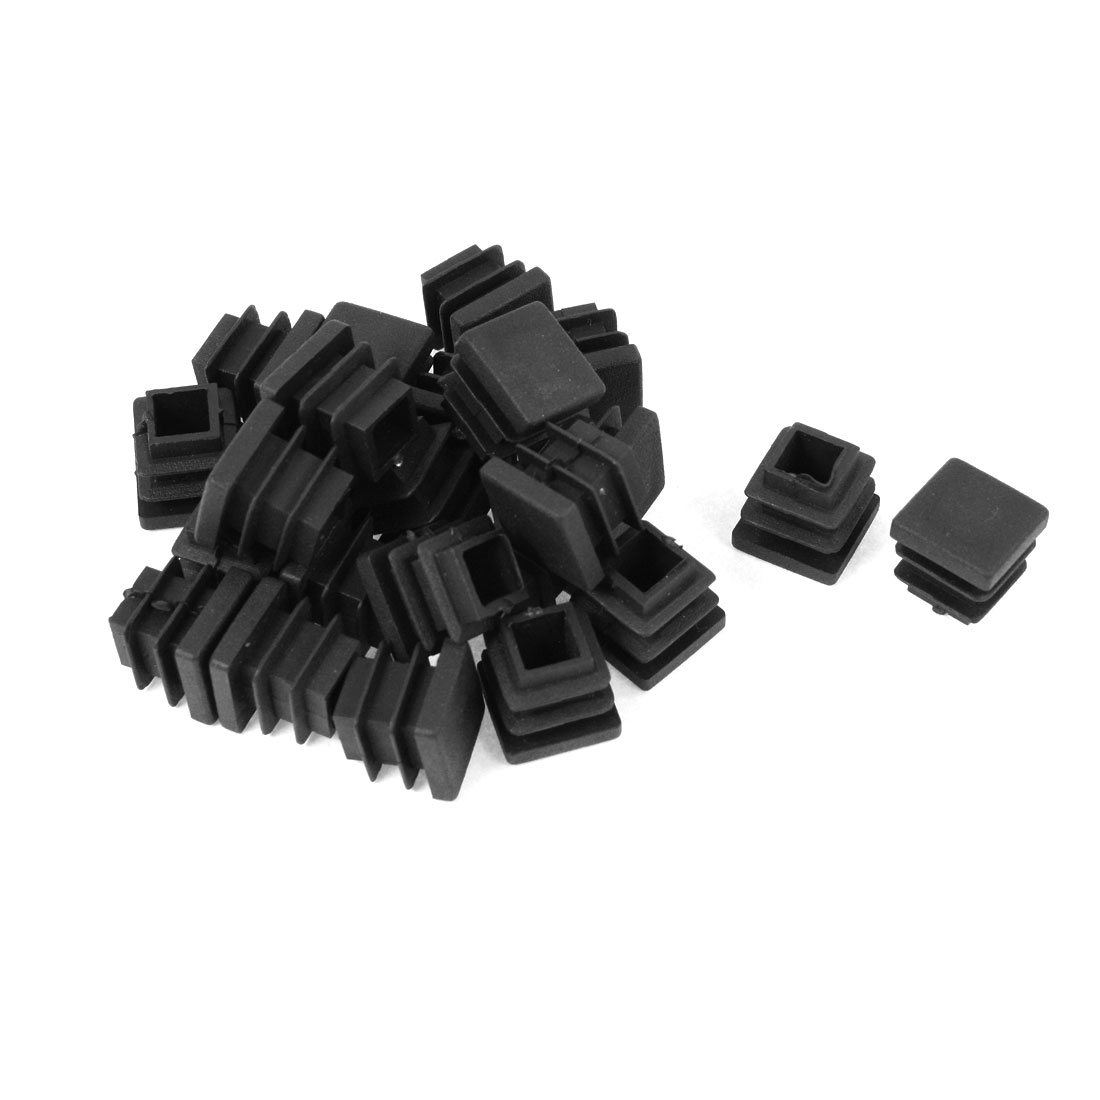 24 Pieces 16mm x 16mm Plastic Blanking End Caps Square Tubing Tube Pipe Insert